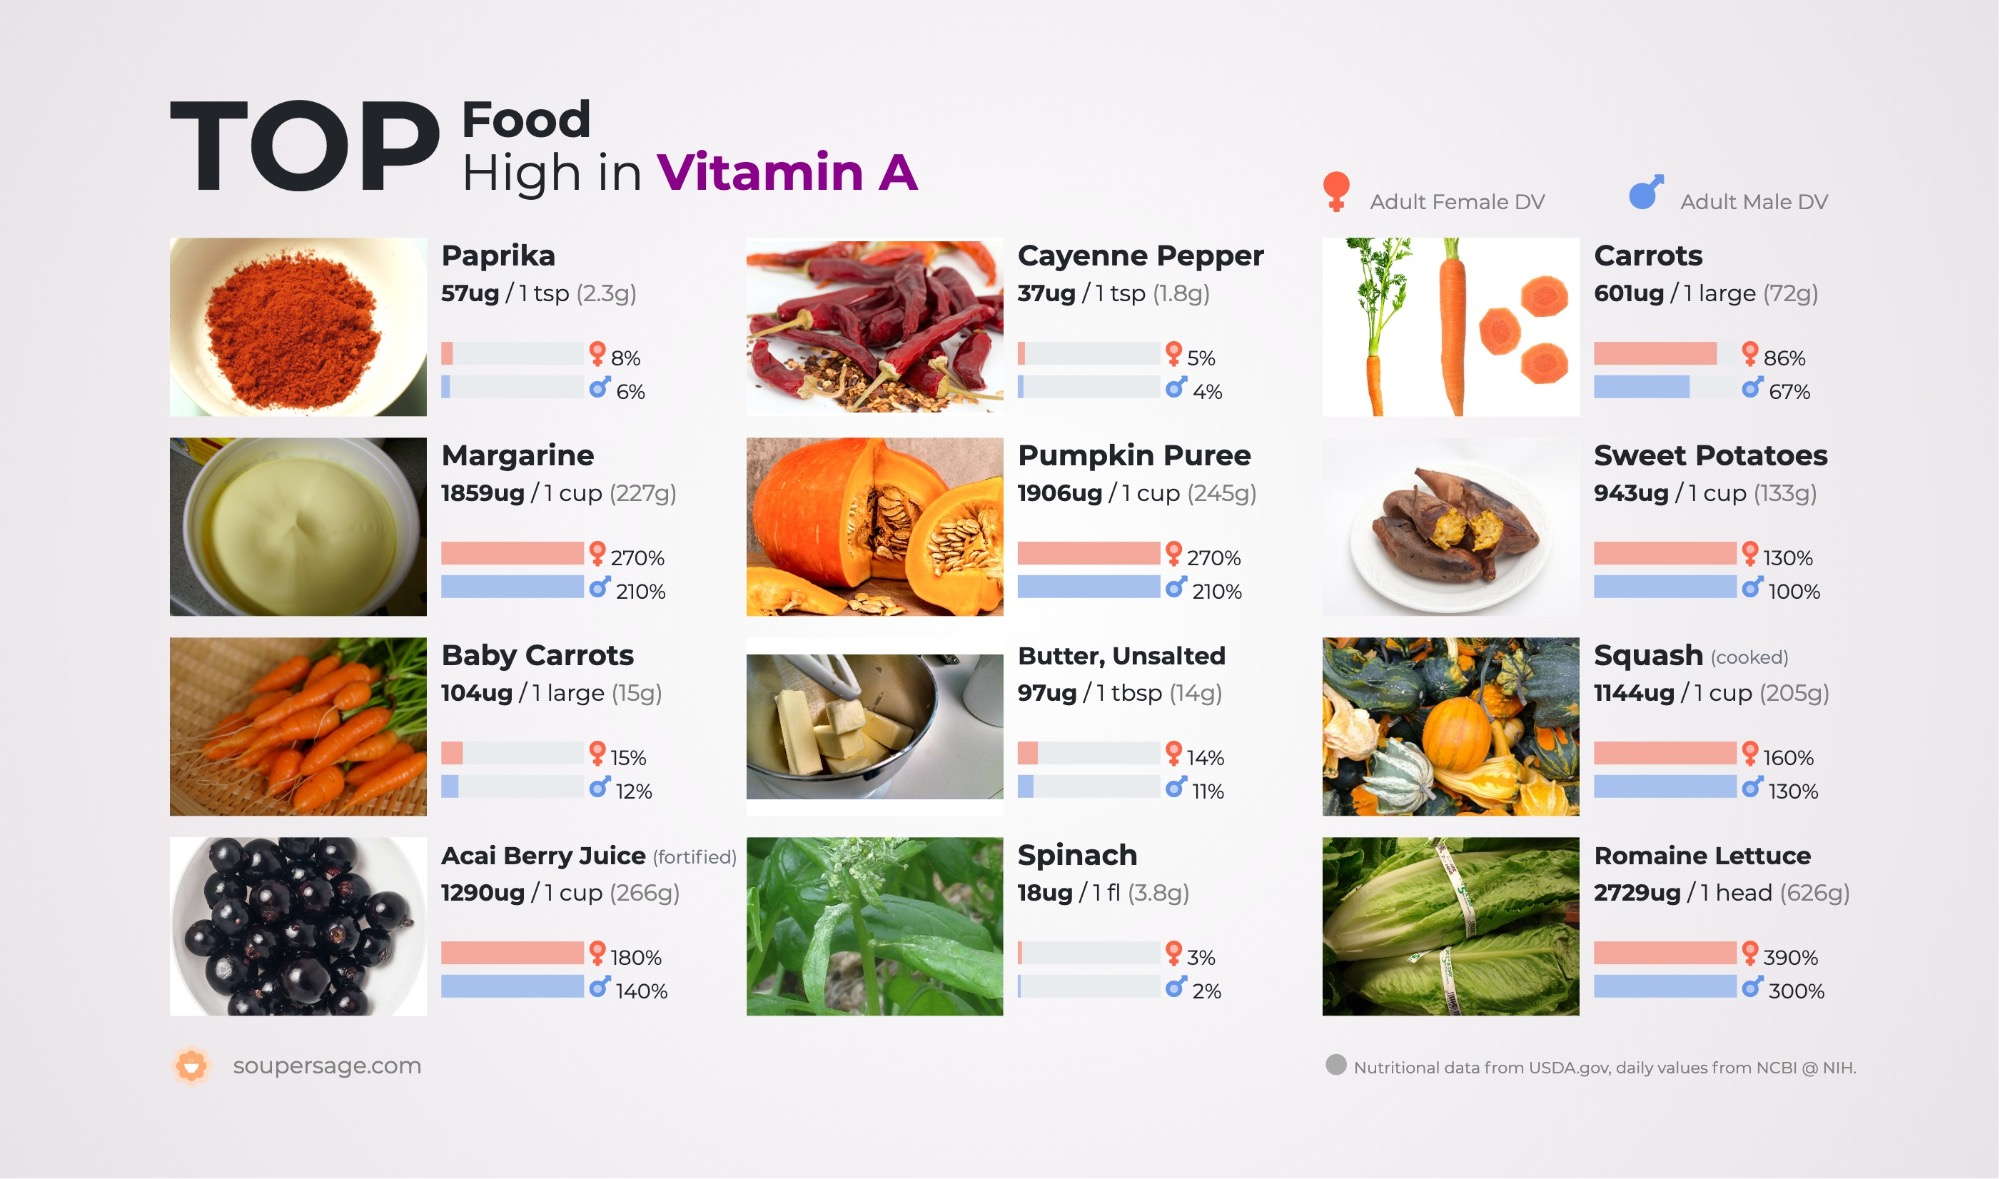 image of Top Food High in Vitamin A